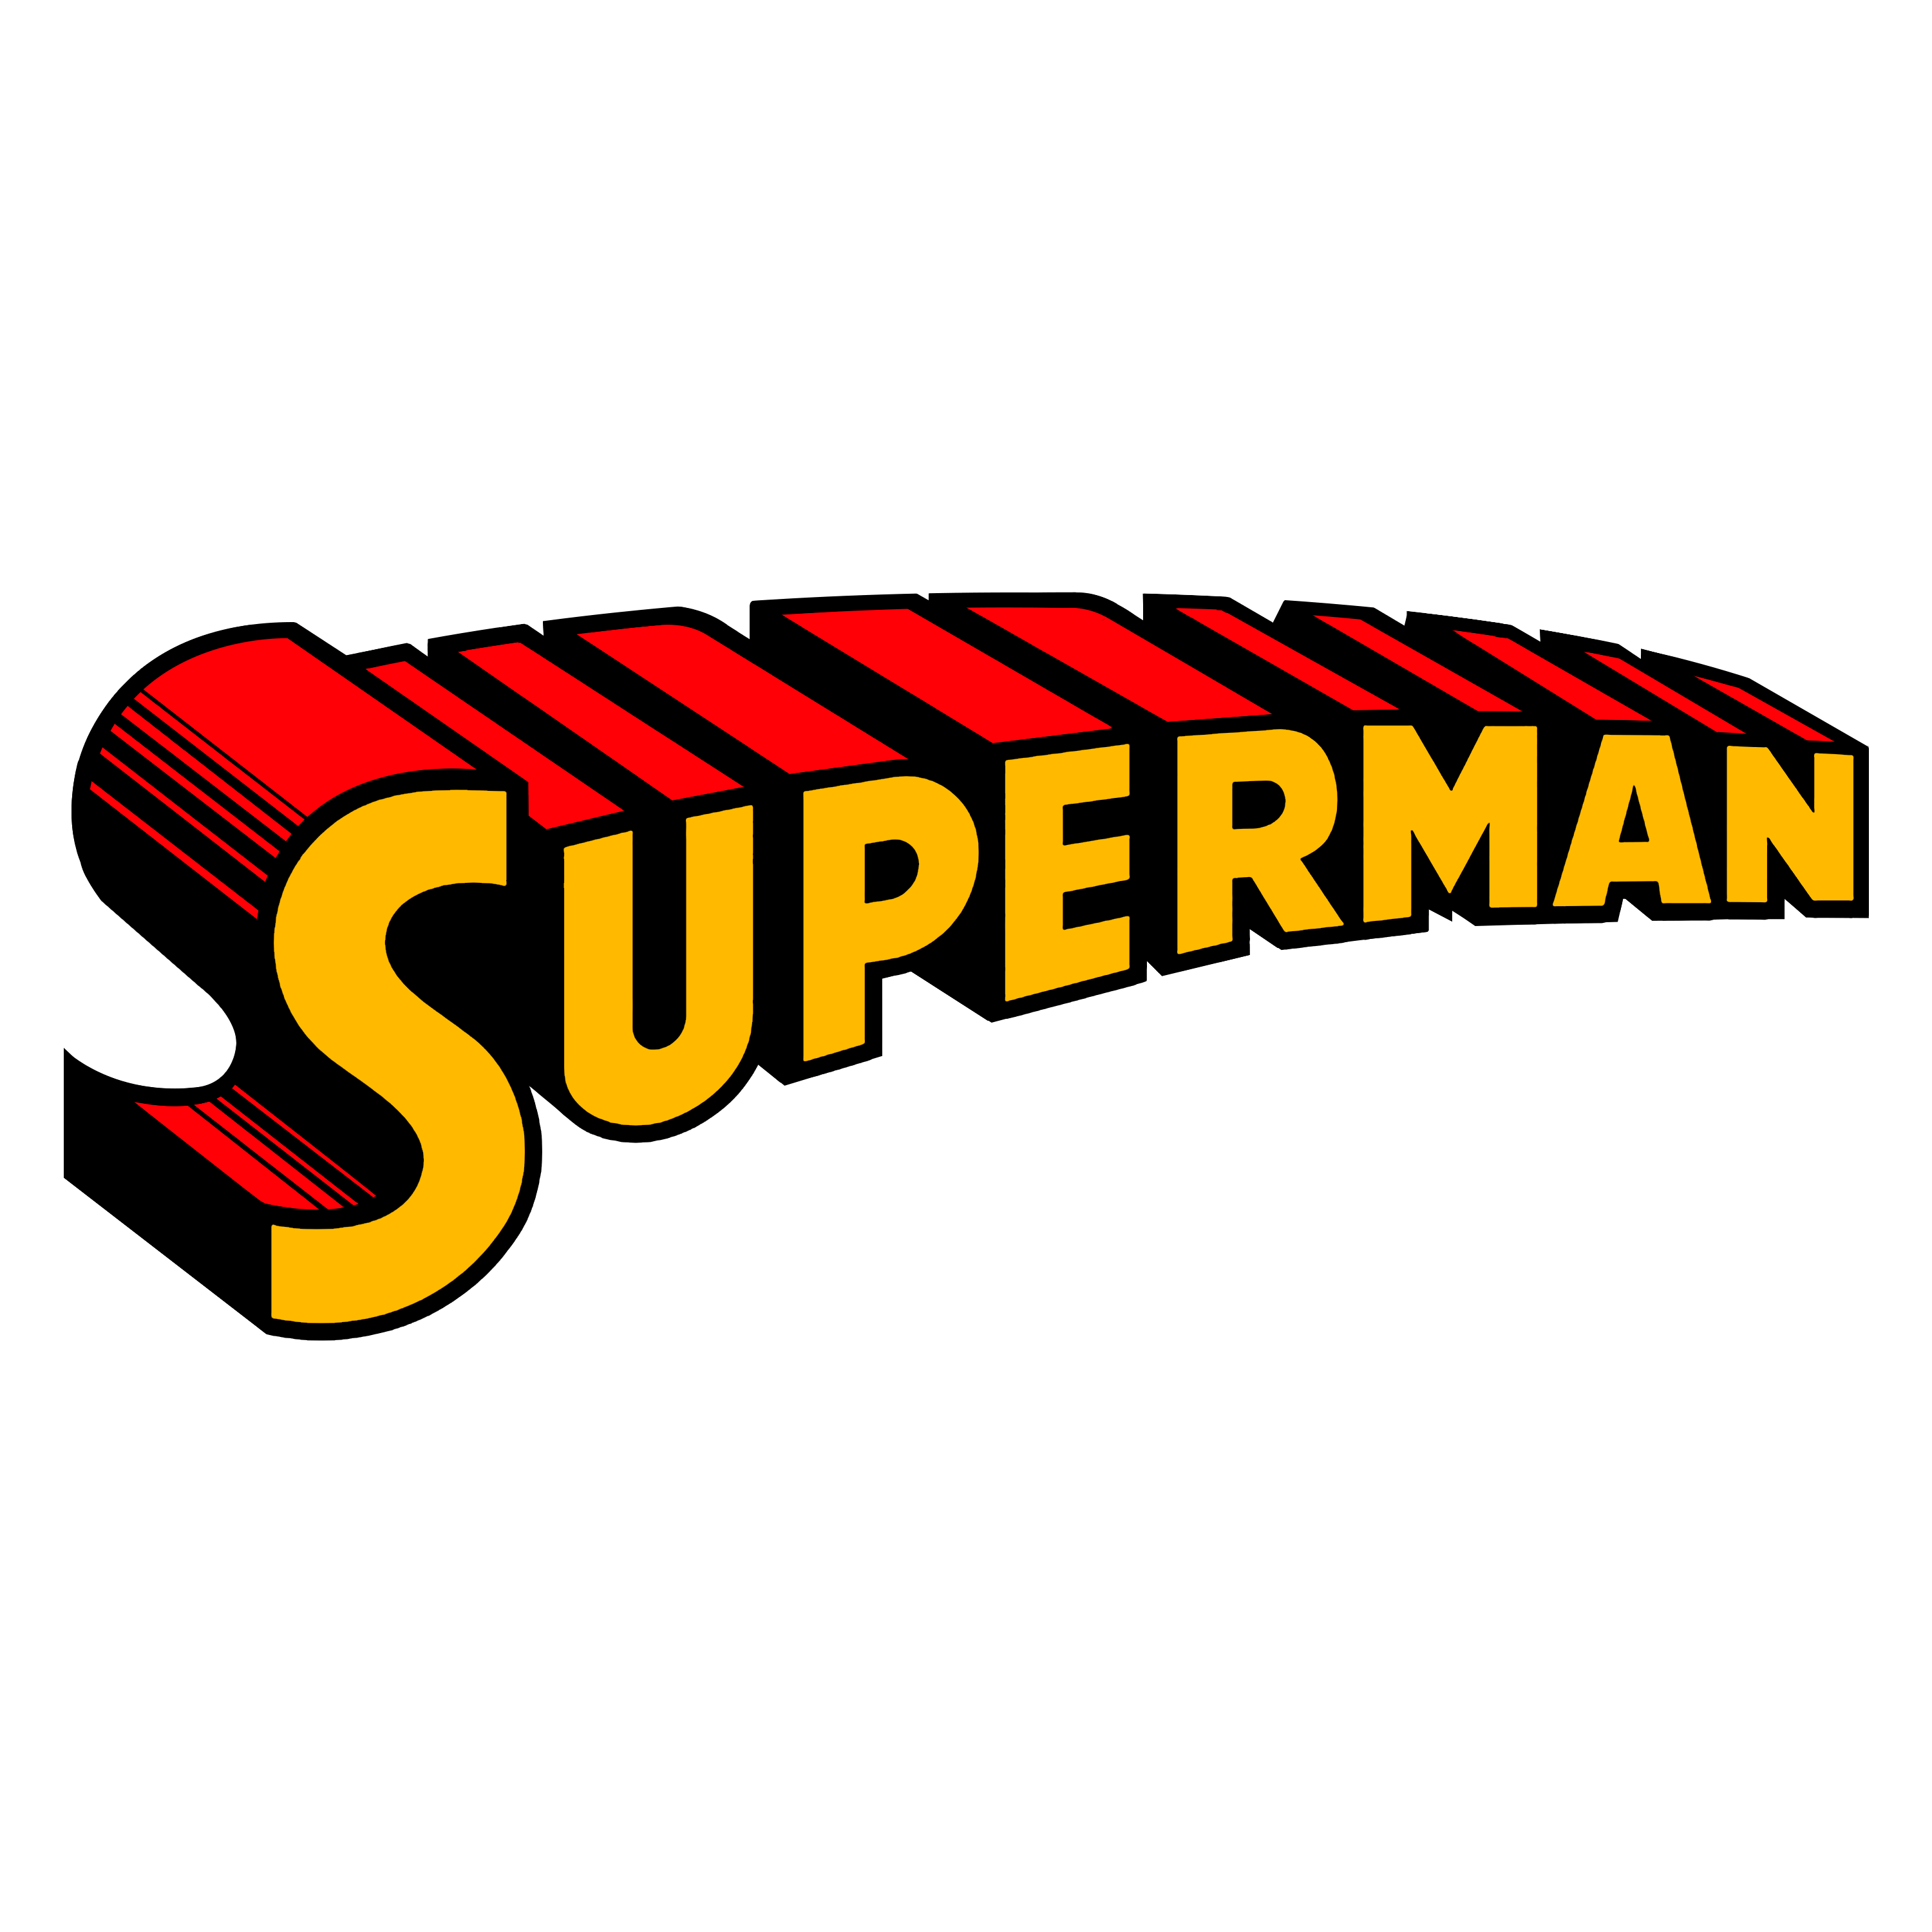 Superman Logo - Download SUPERMAN LOGO Free PNG transparent image and clipart